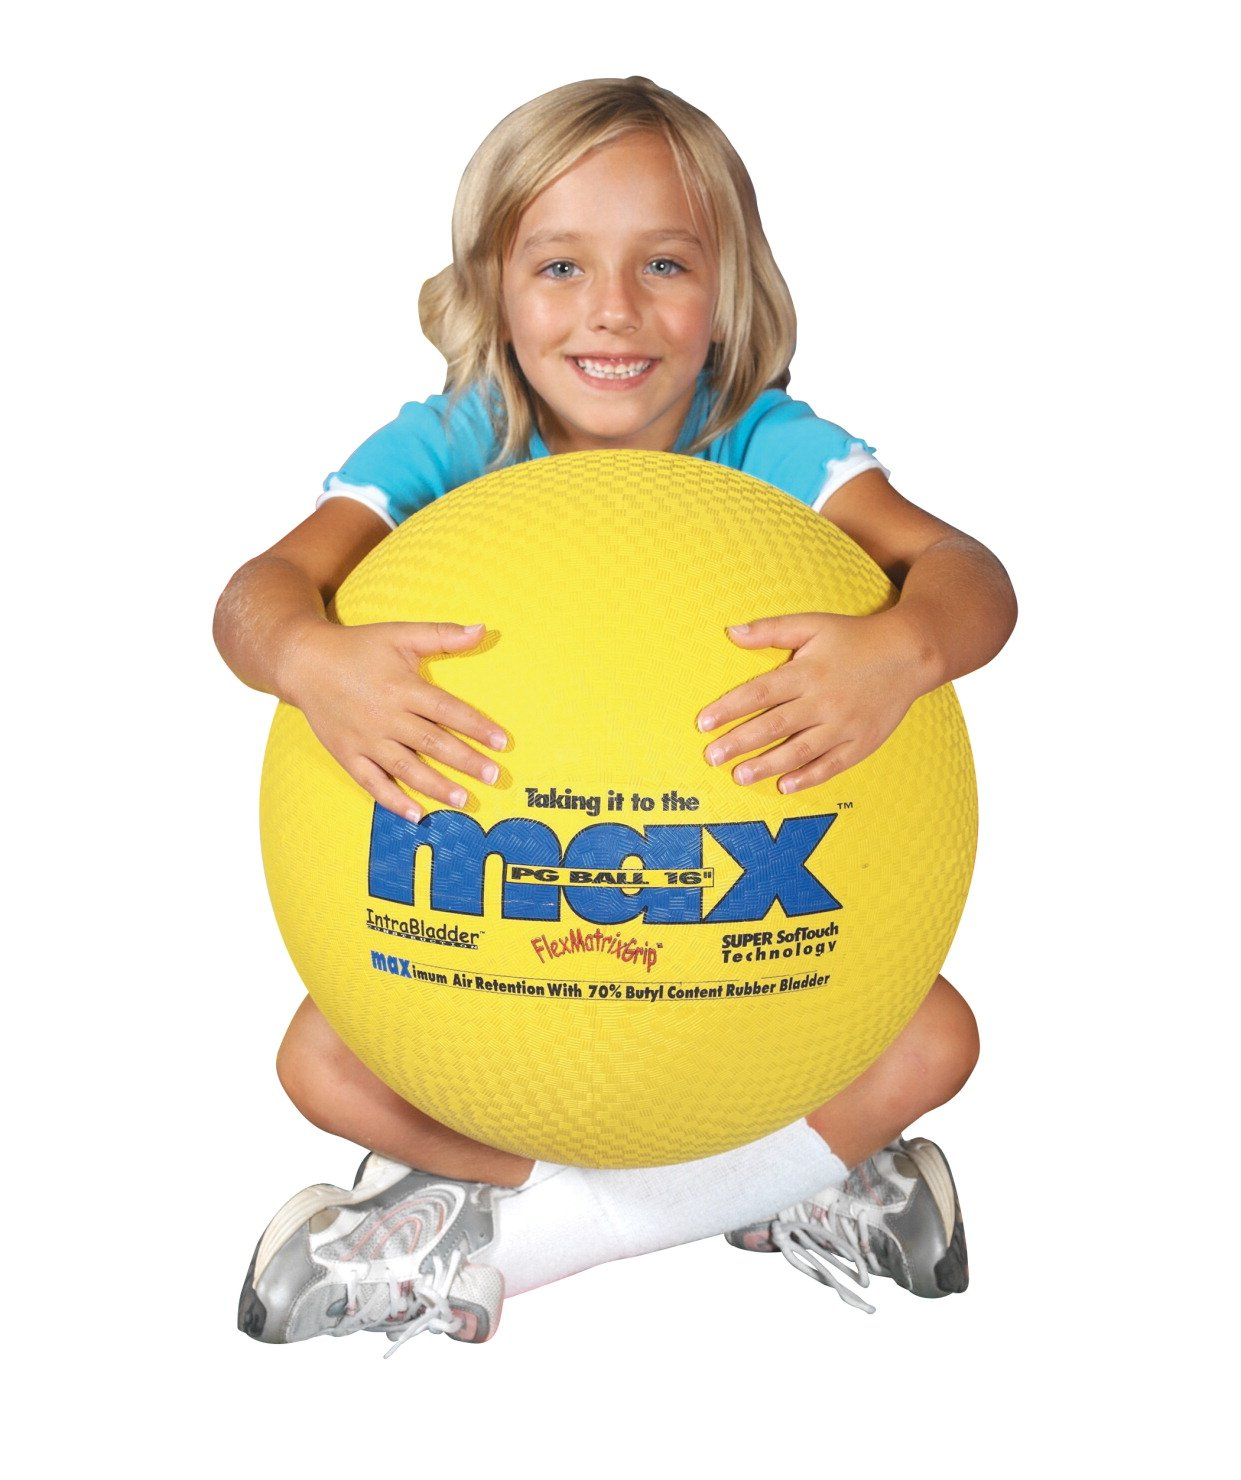 SportimeMax Utility Ball, Yellow, 16 Inches